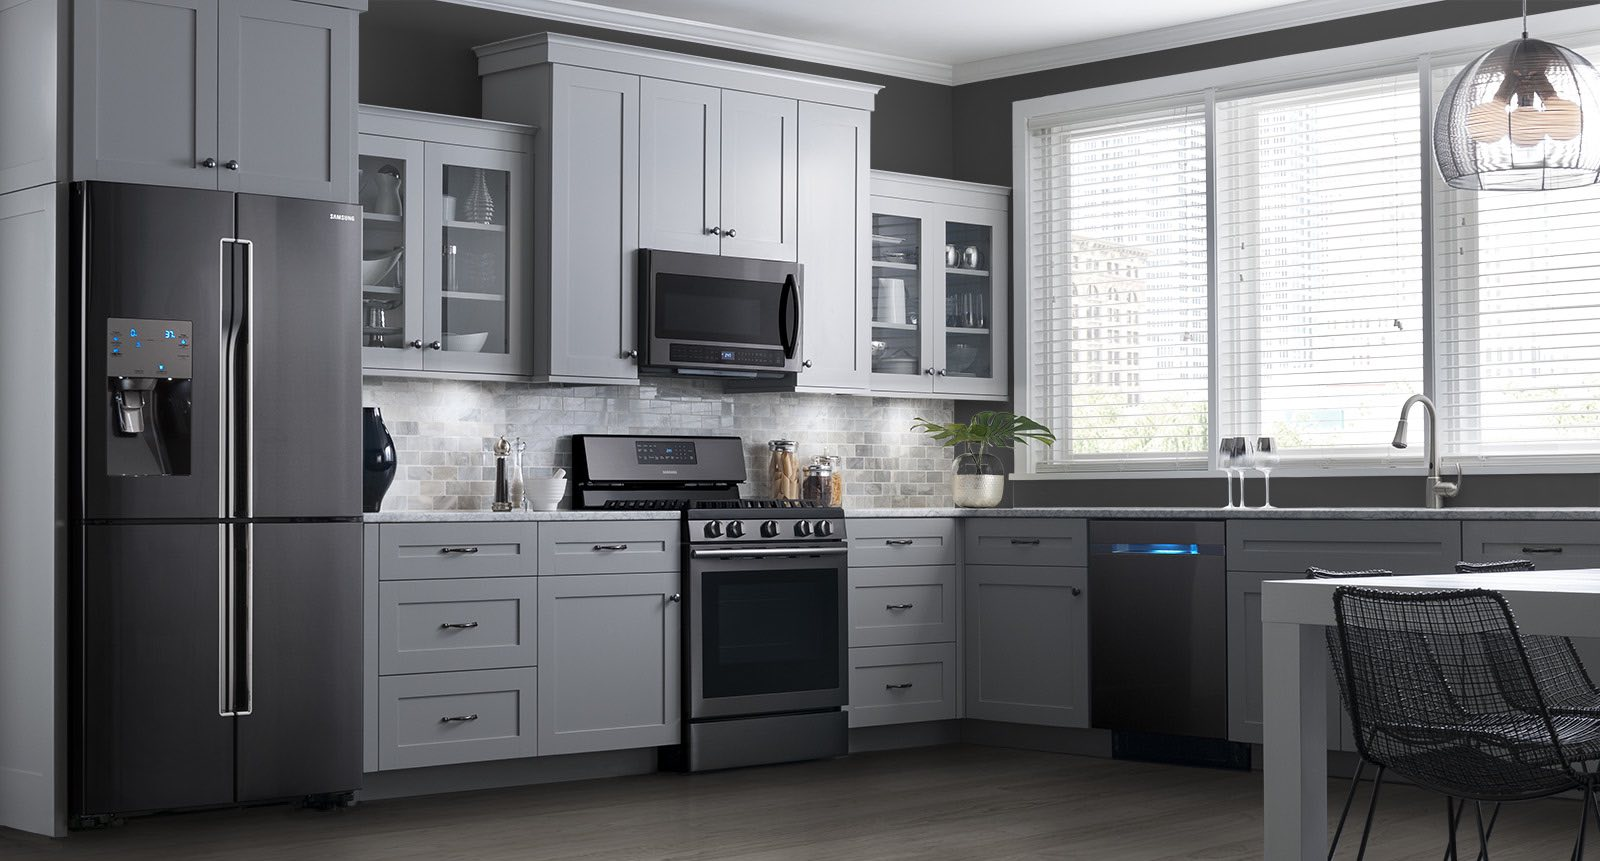 How to Mix and Match Appliance Finishes